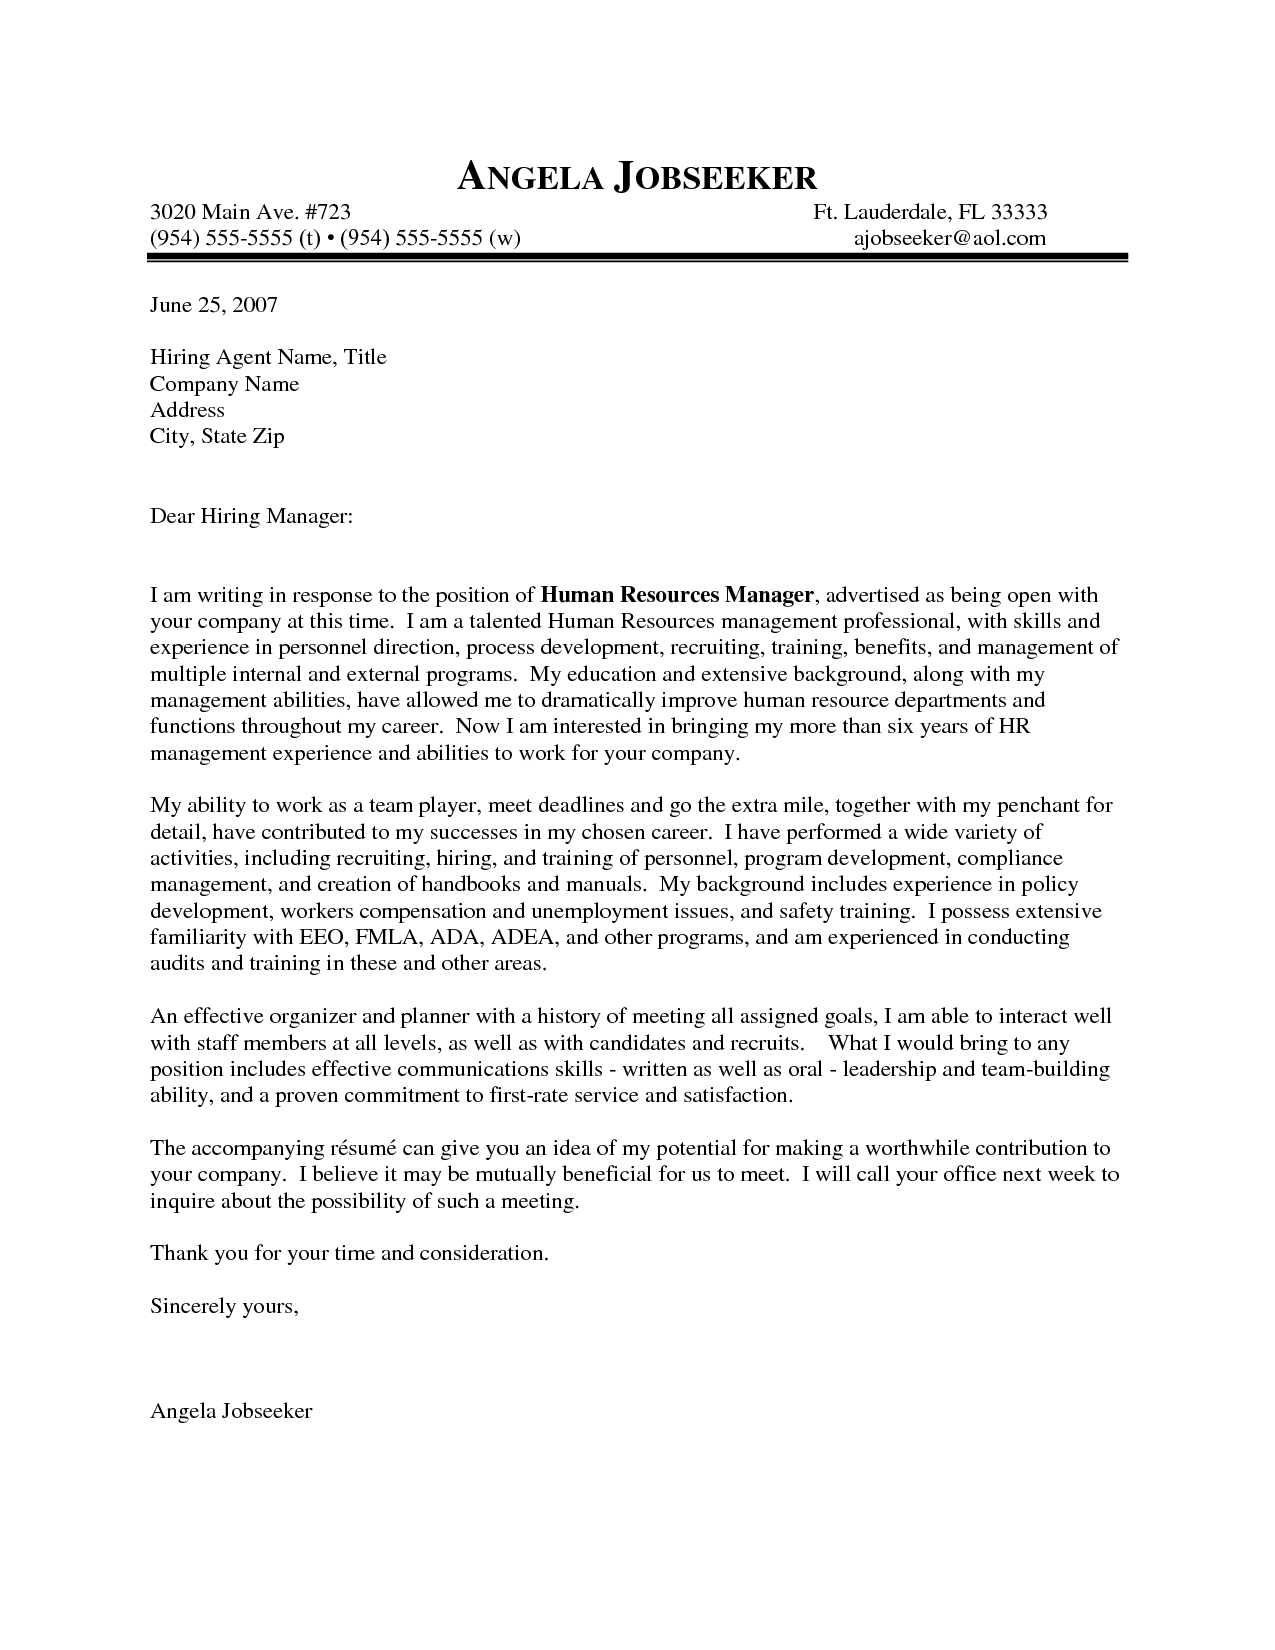 Outstanding Cover Letter Examples | HR Manager Cover Letter Example ...